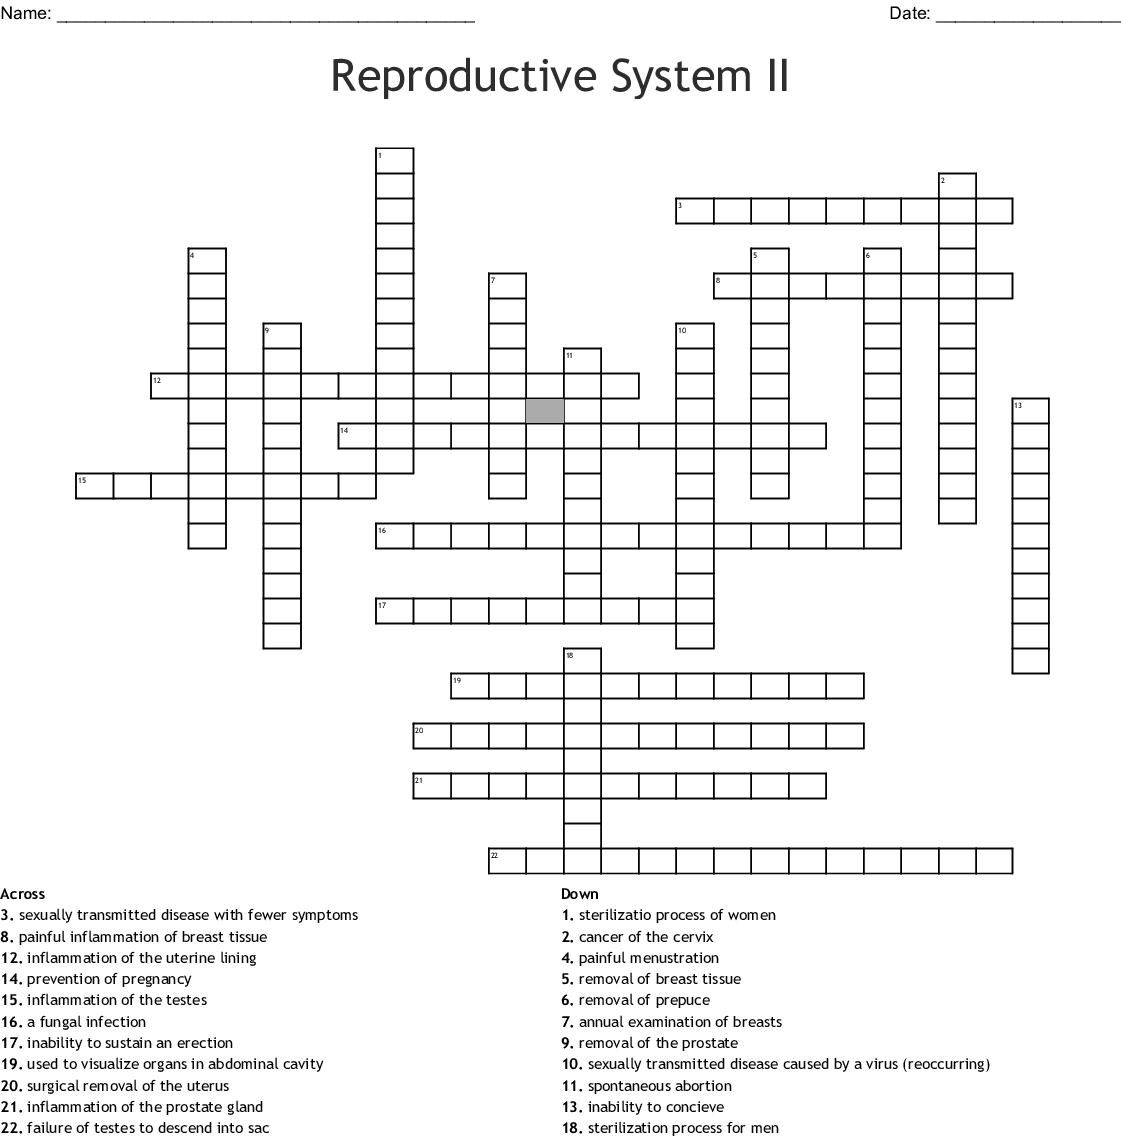 Reproductive System Ii Crossword